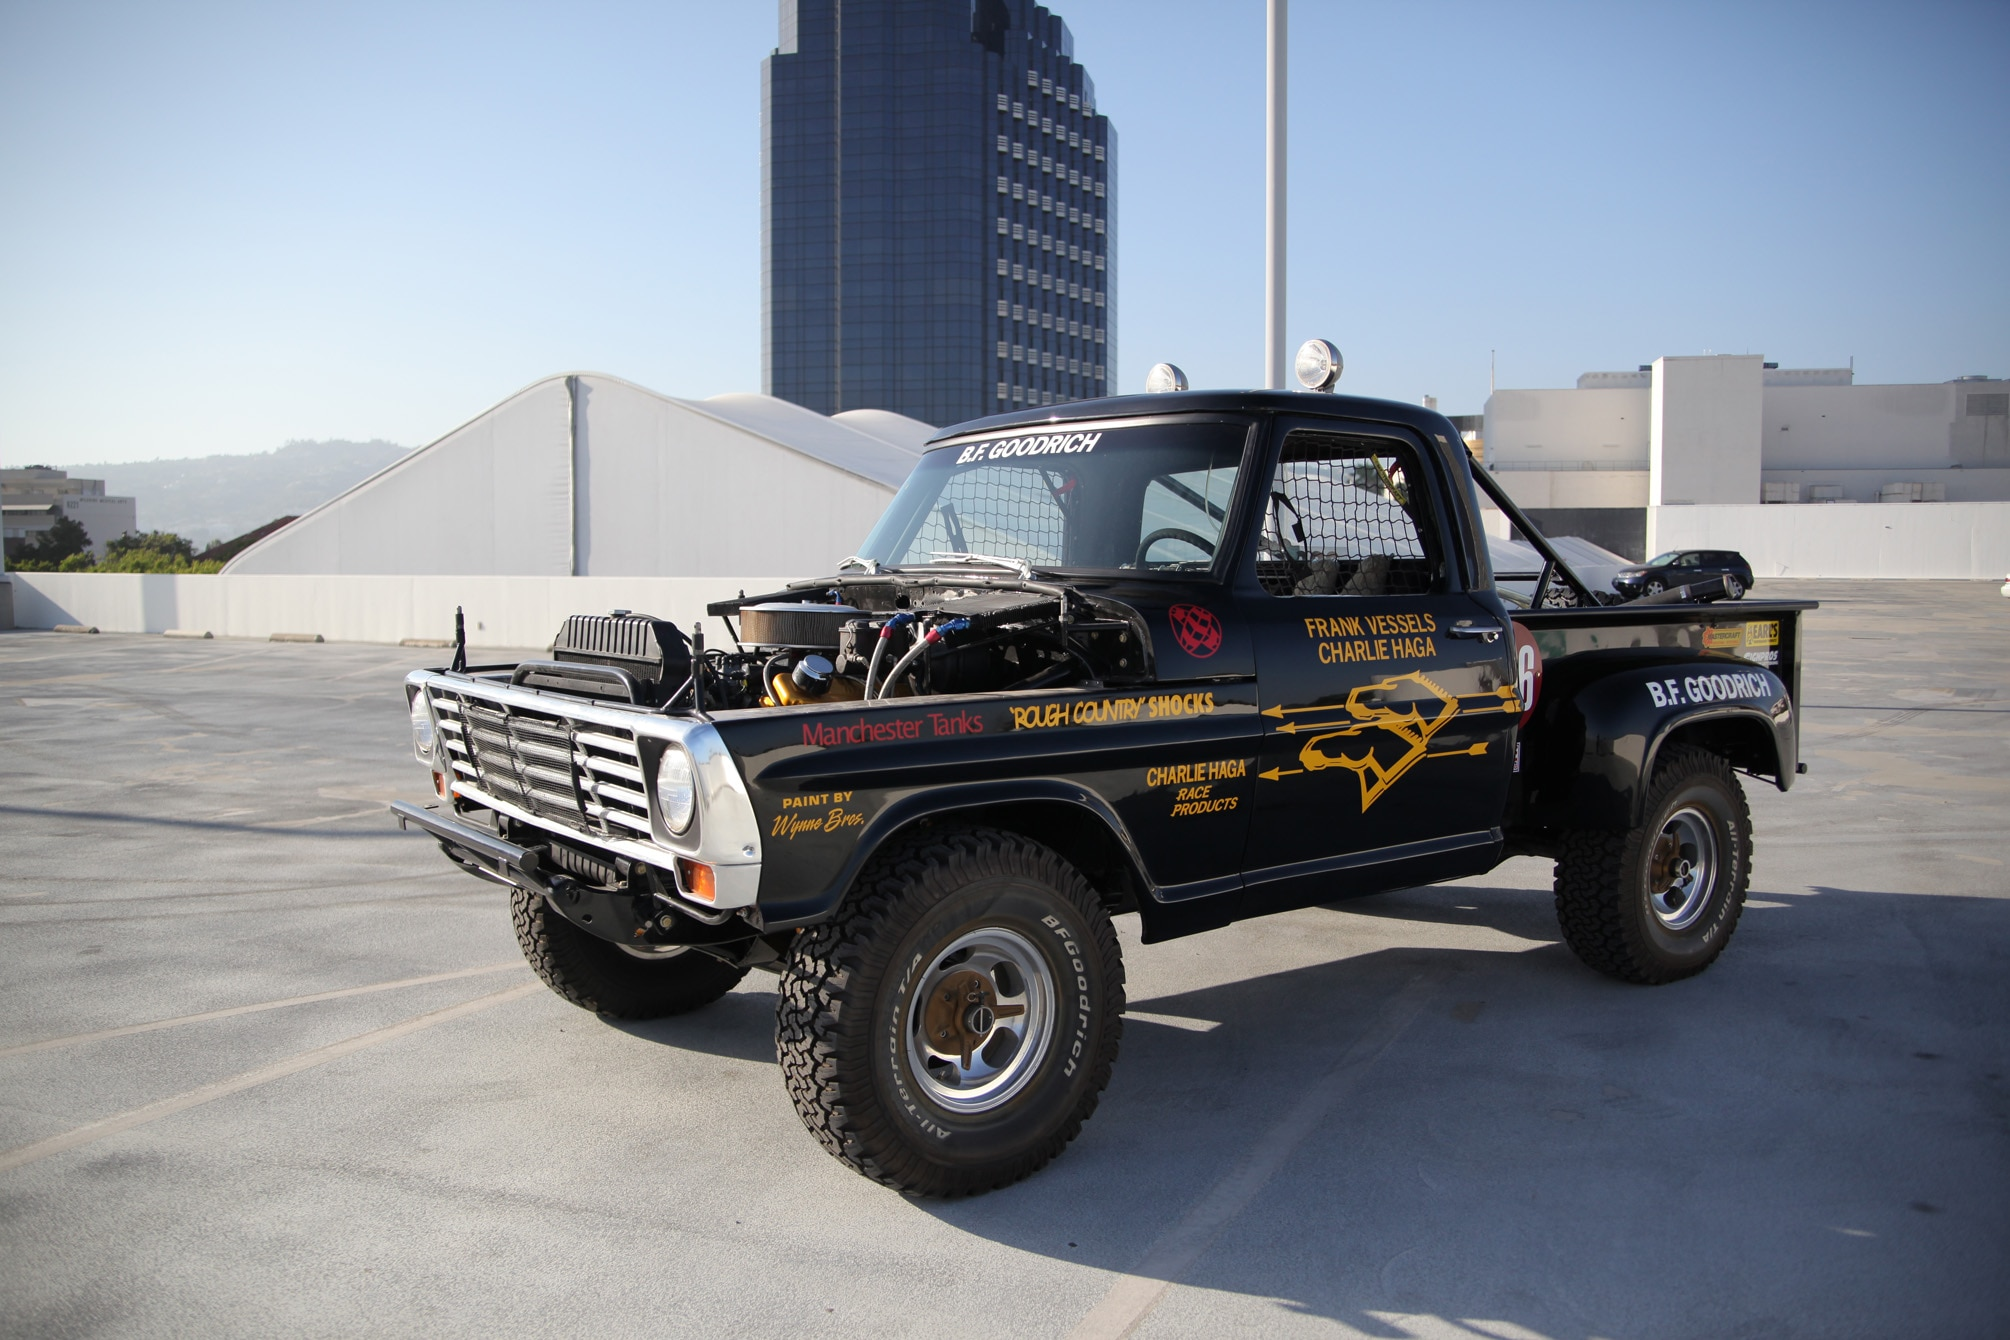 medium resolution of frank scoop vessels 1972 ford f100 race truck goes to auction